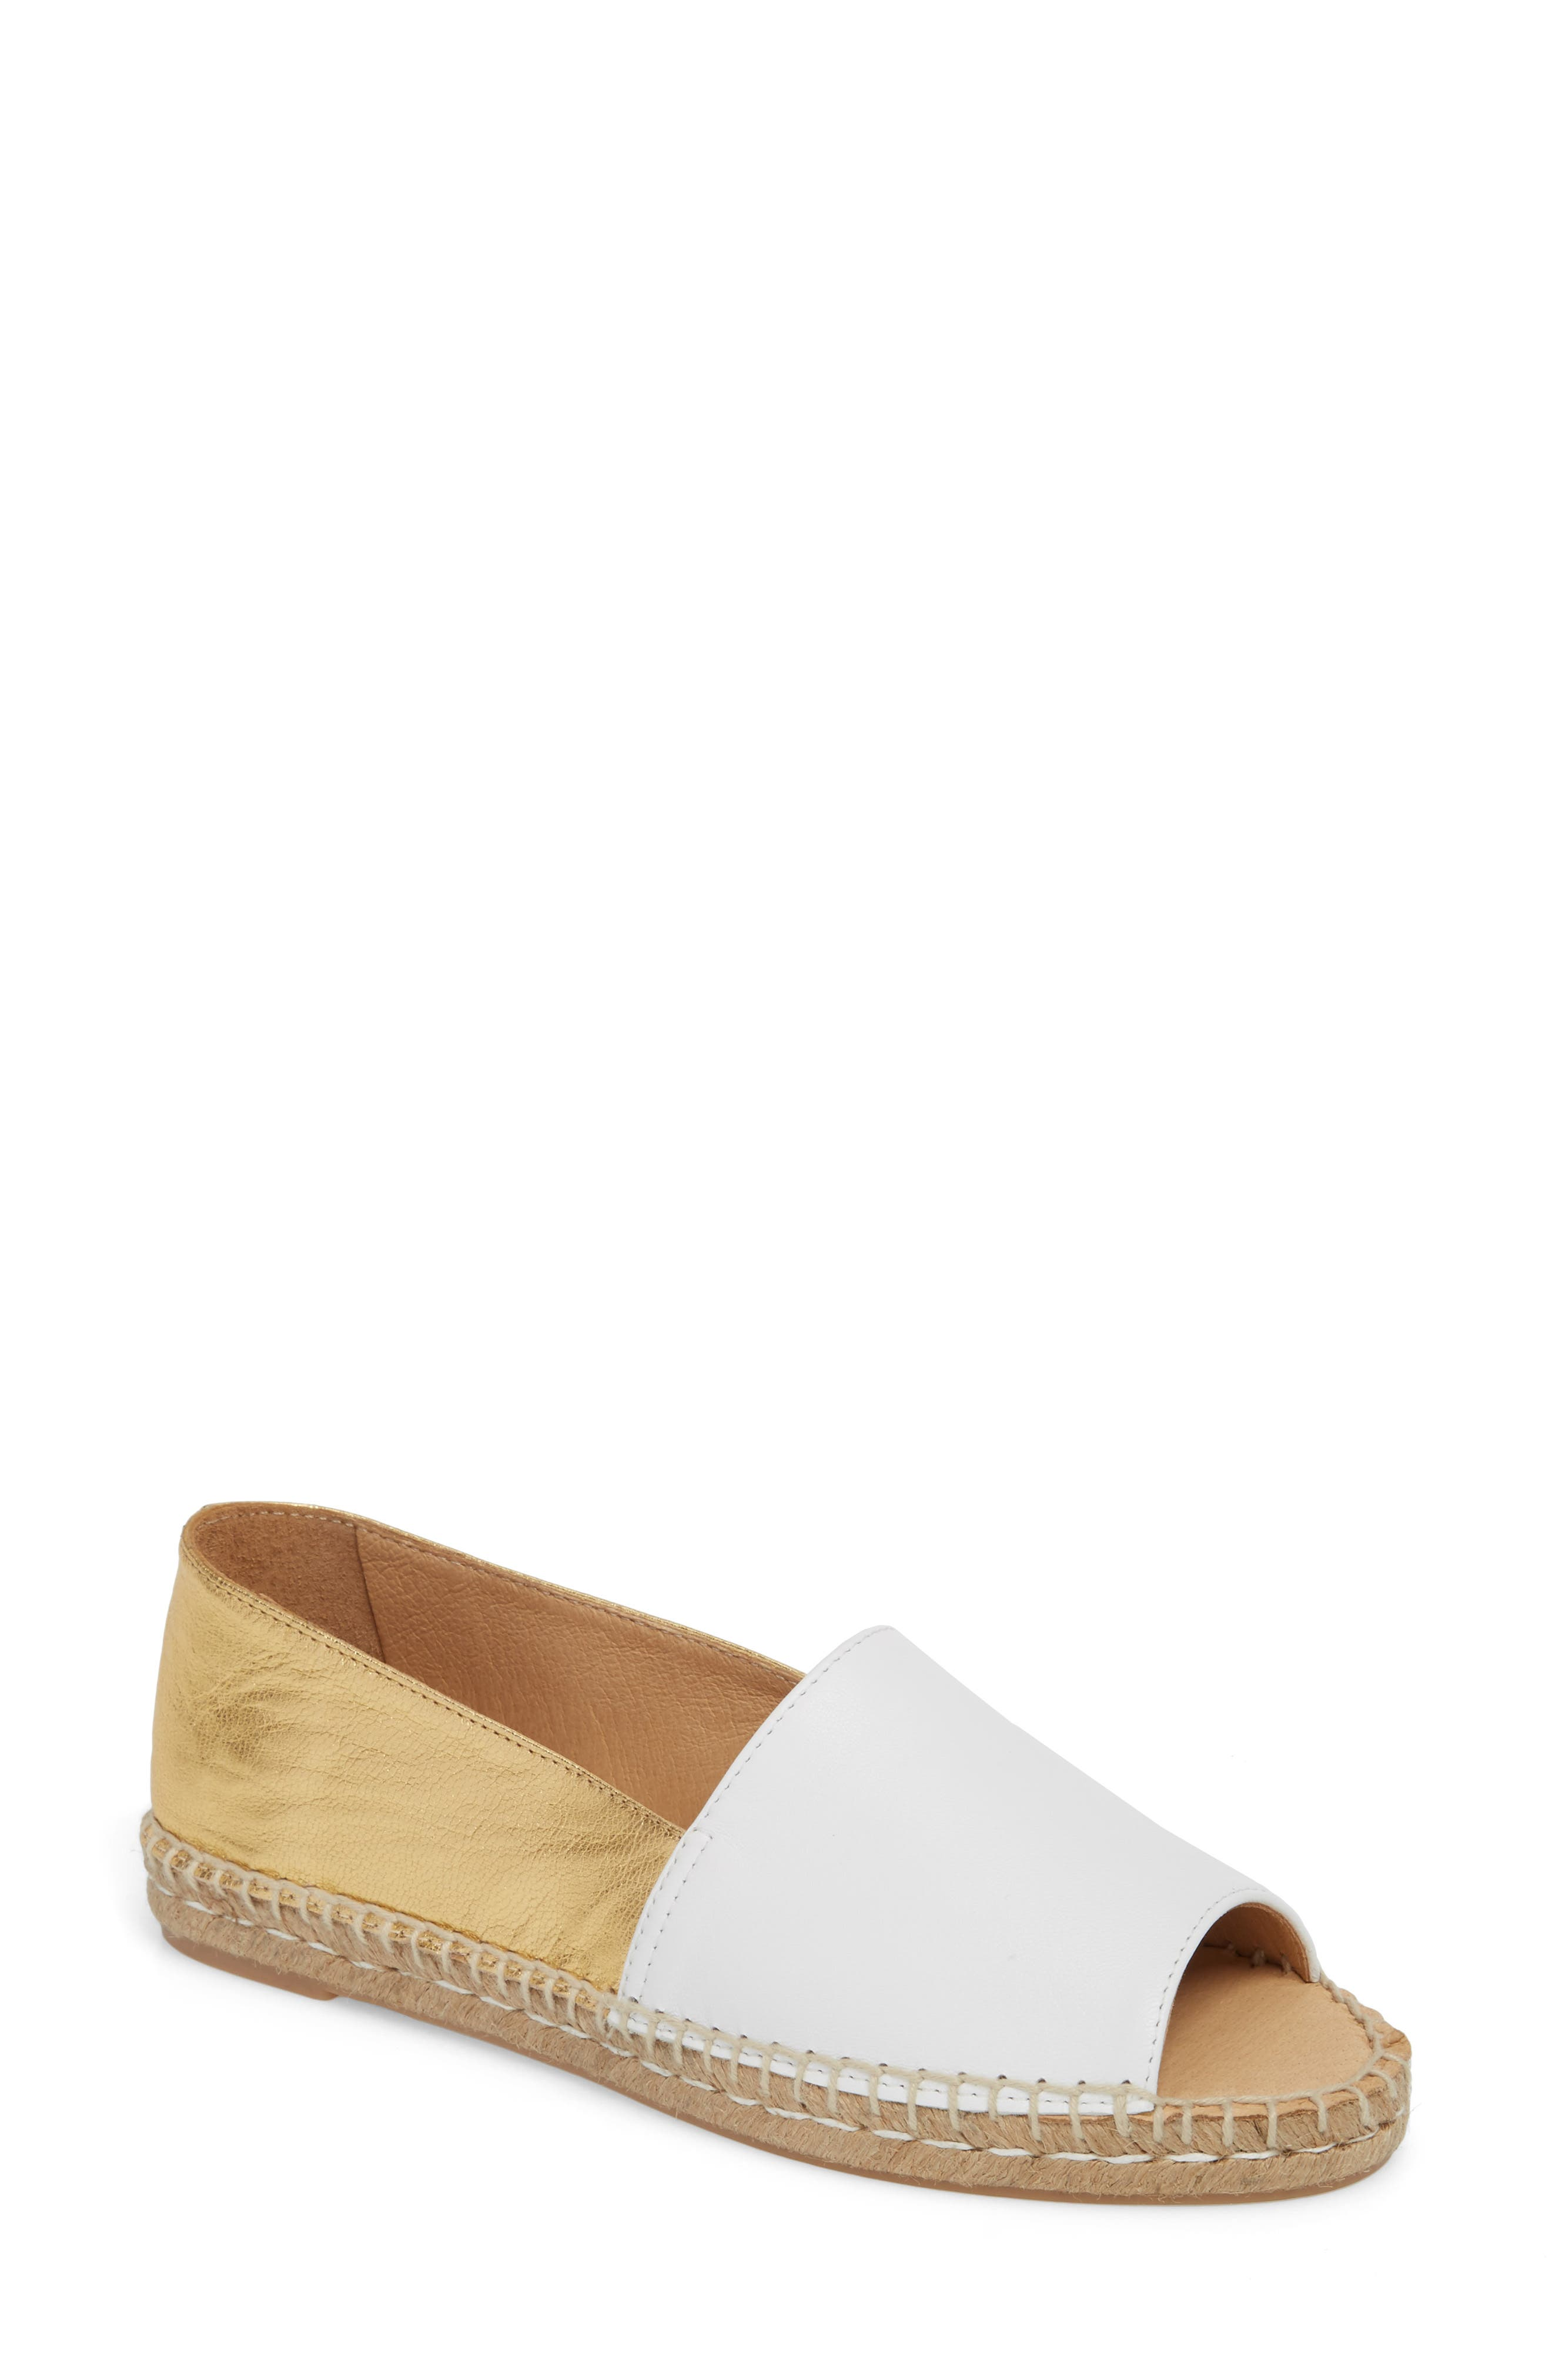 Patricia Green Women's Milly Espadrille H6eUvQfp